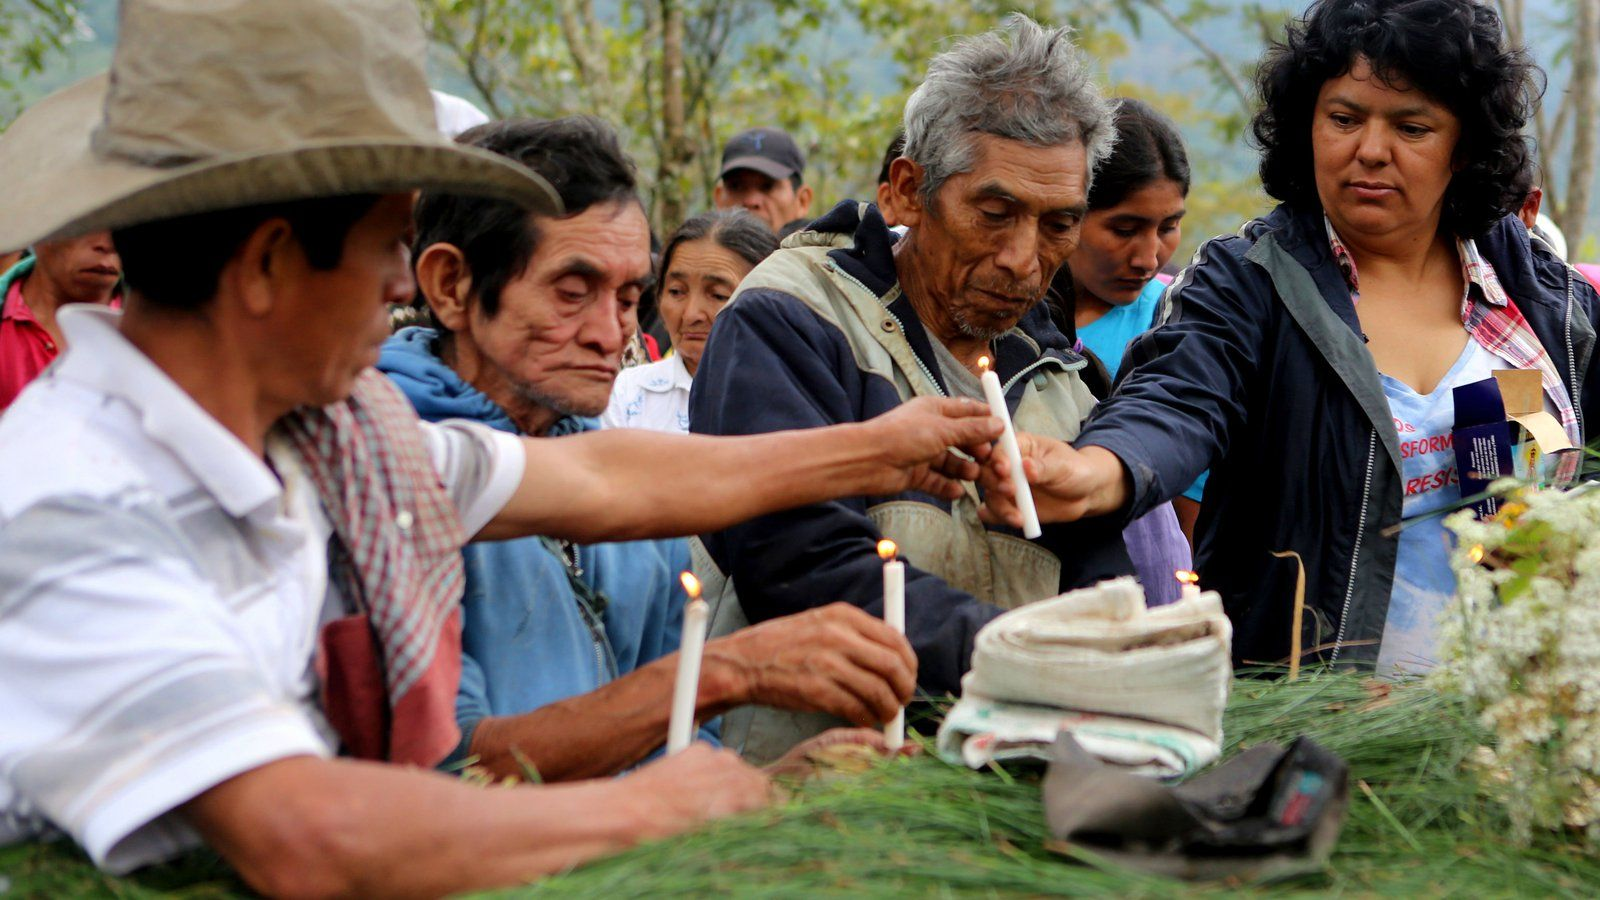 New report shows killings of environmental activists are increasing, with indigenous communities hardest hit. We shine a spotlight on Honduras - the most dangerous country to be an environmental defender